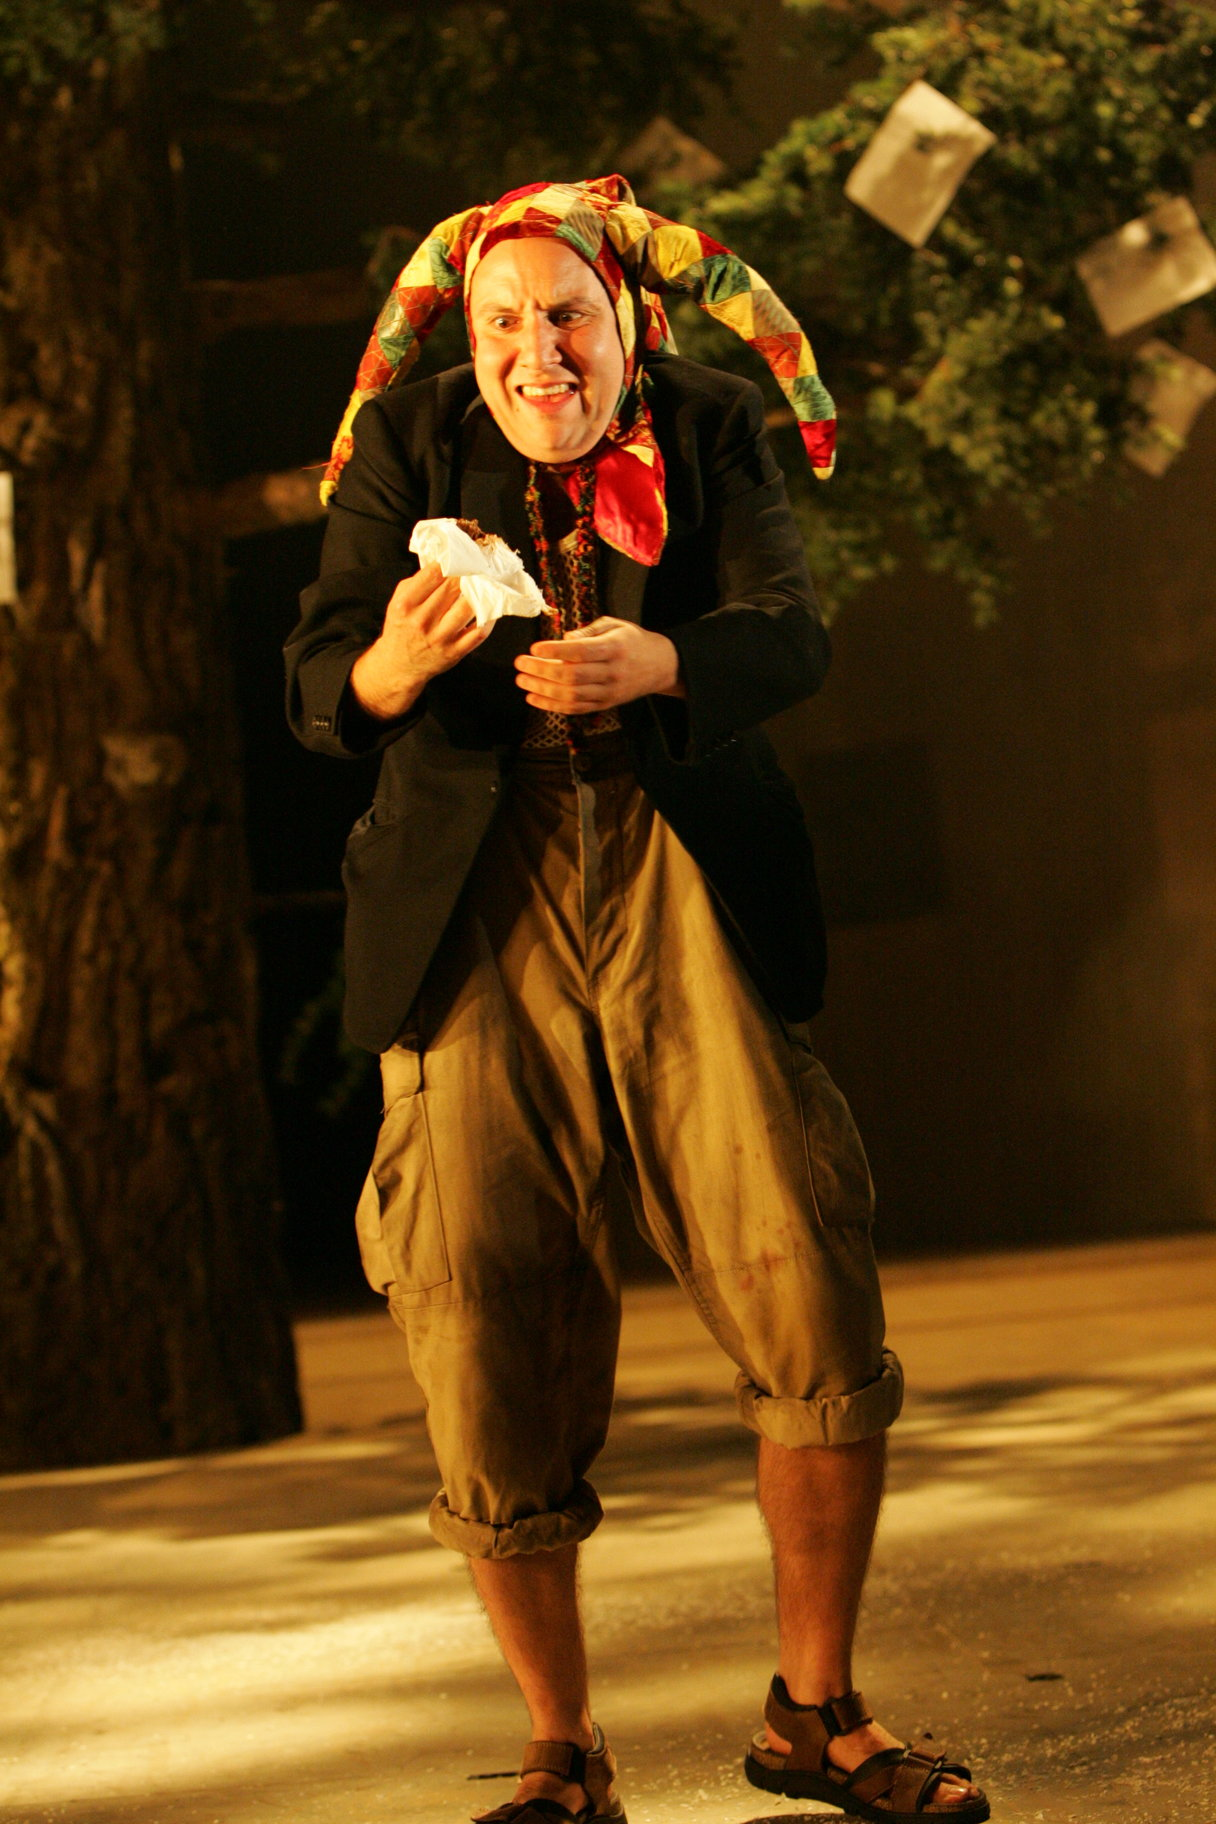 A man in short trousers and a jester's hat.